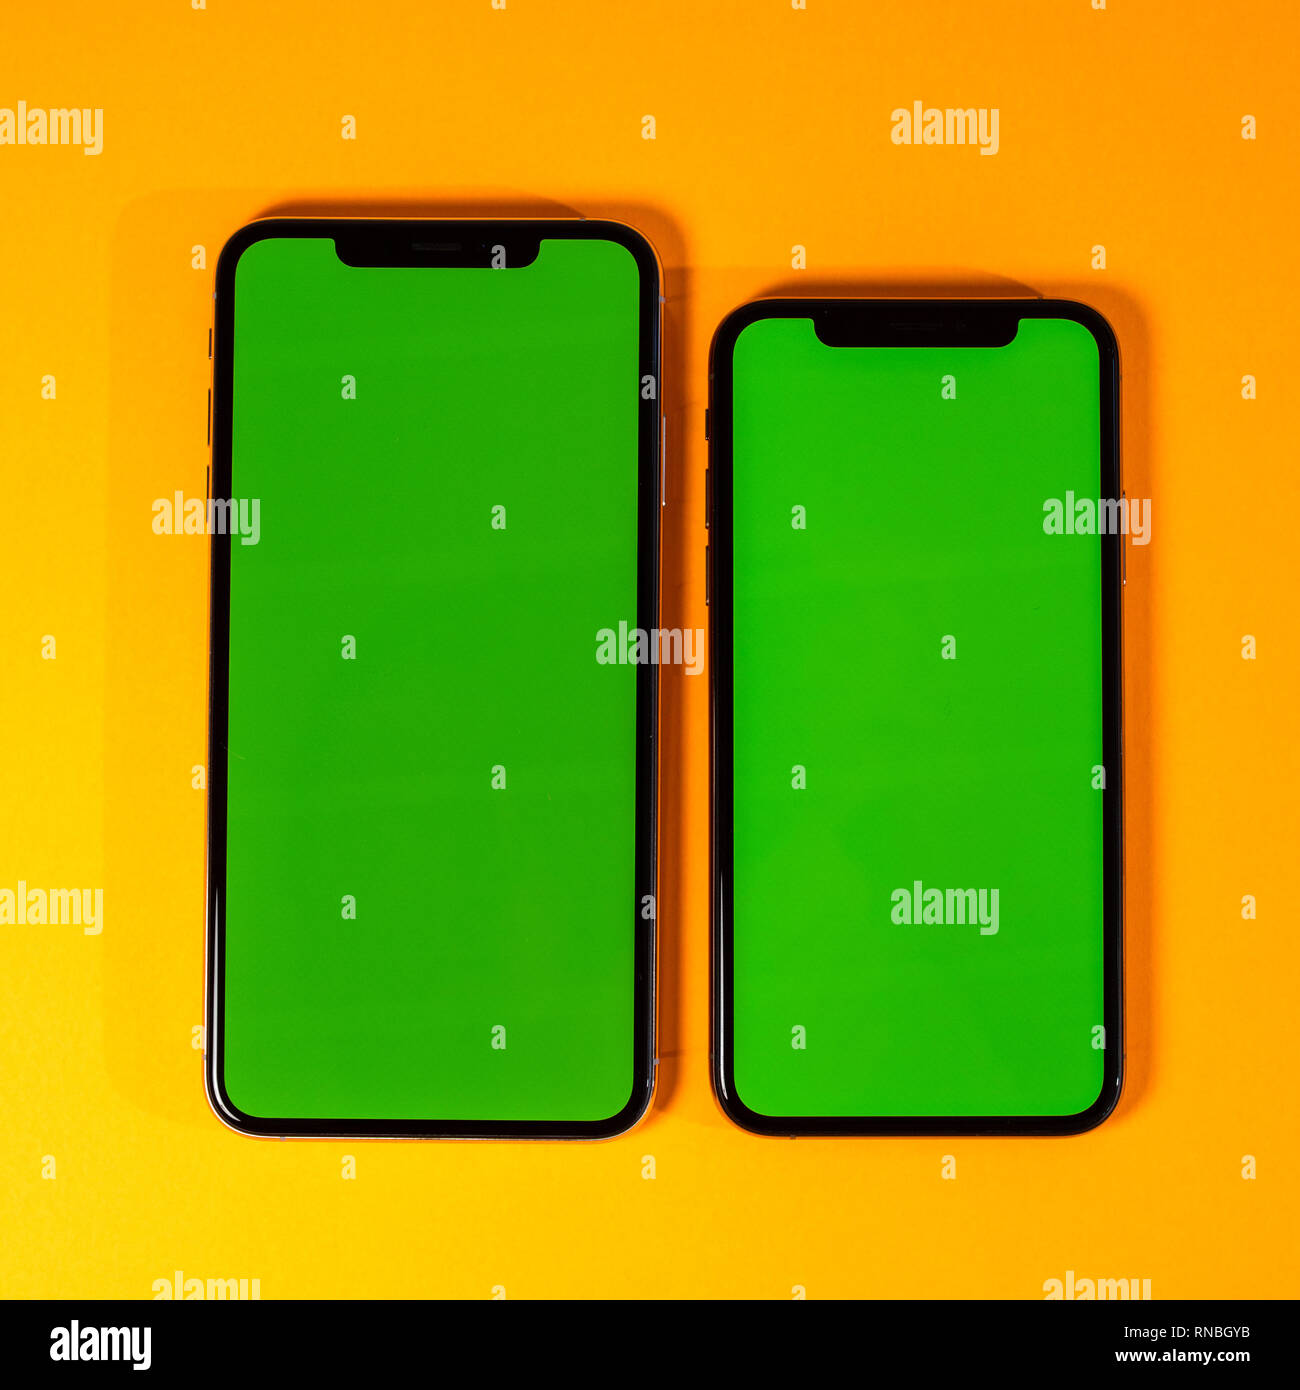 Green chroma key on new mobile smartphne as hero object on bright glamorous modern neon pop orange background - smartphone ready to insert your app square image - Stock Image